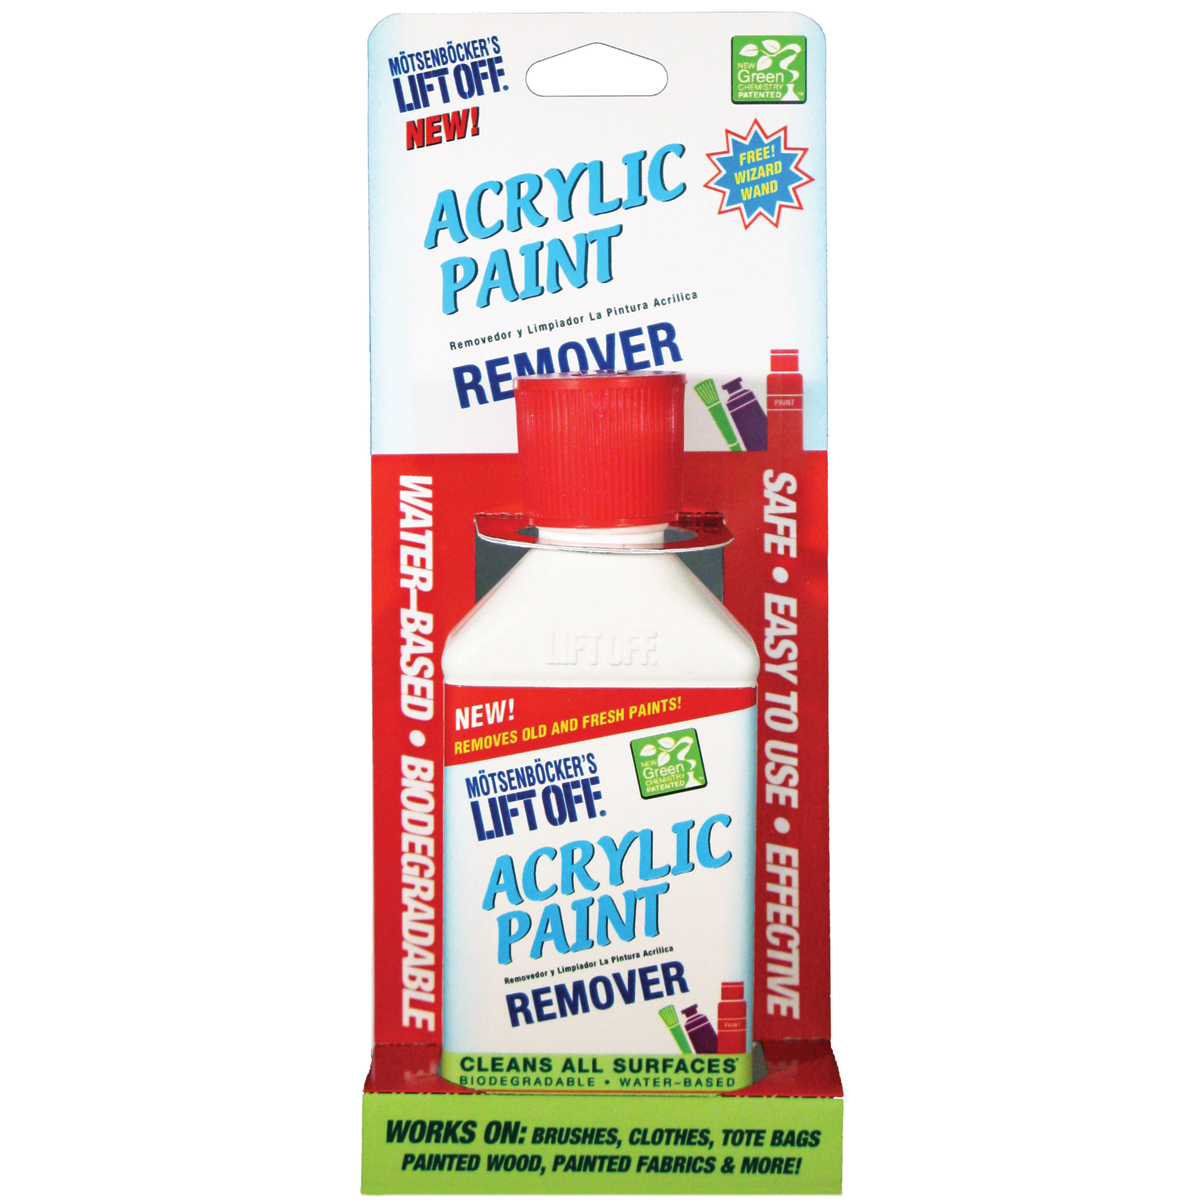 Click here to buy Lift Off Acrylic Paint Remover, 4.5 oz by Motsenbacher.